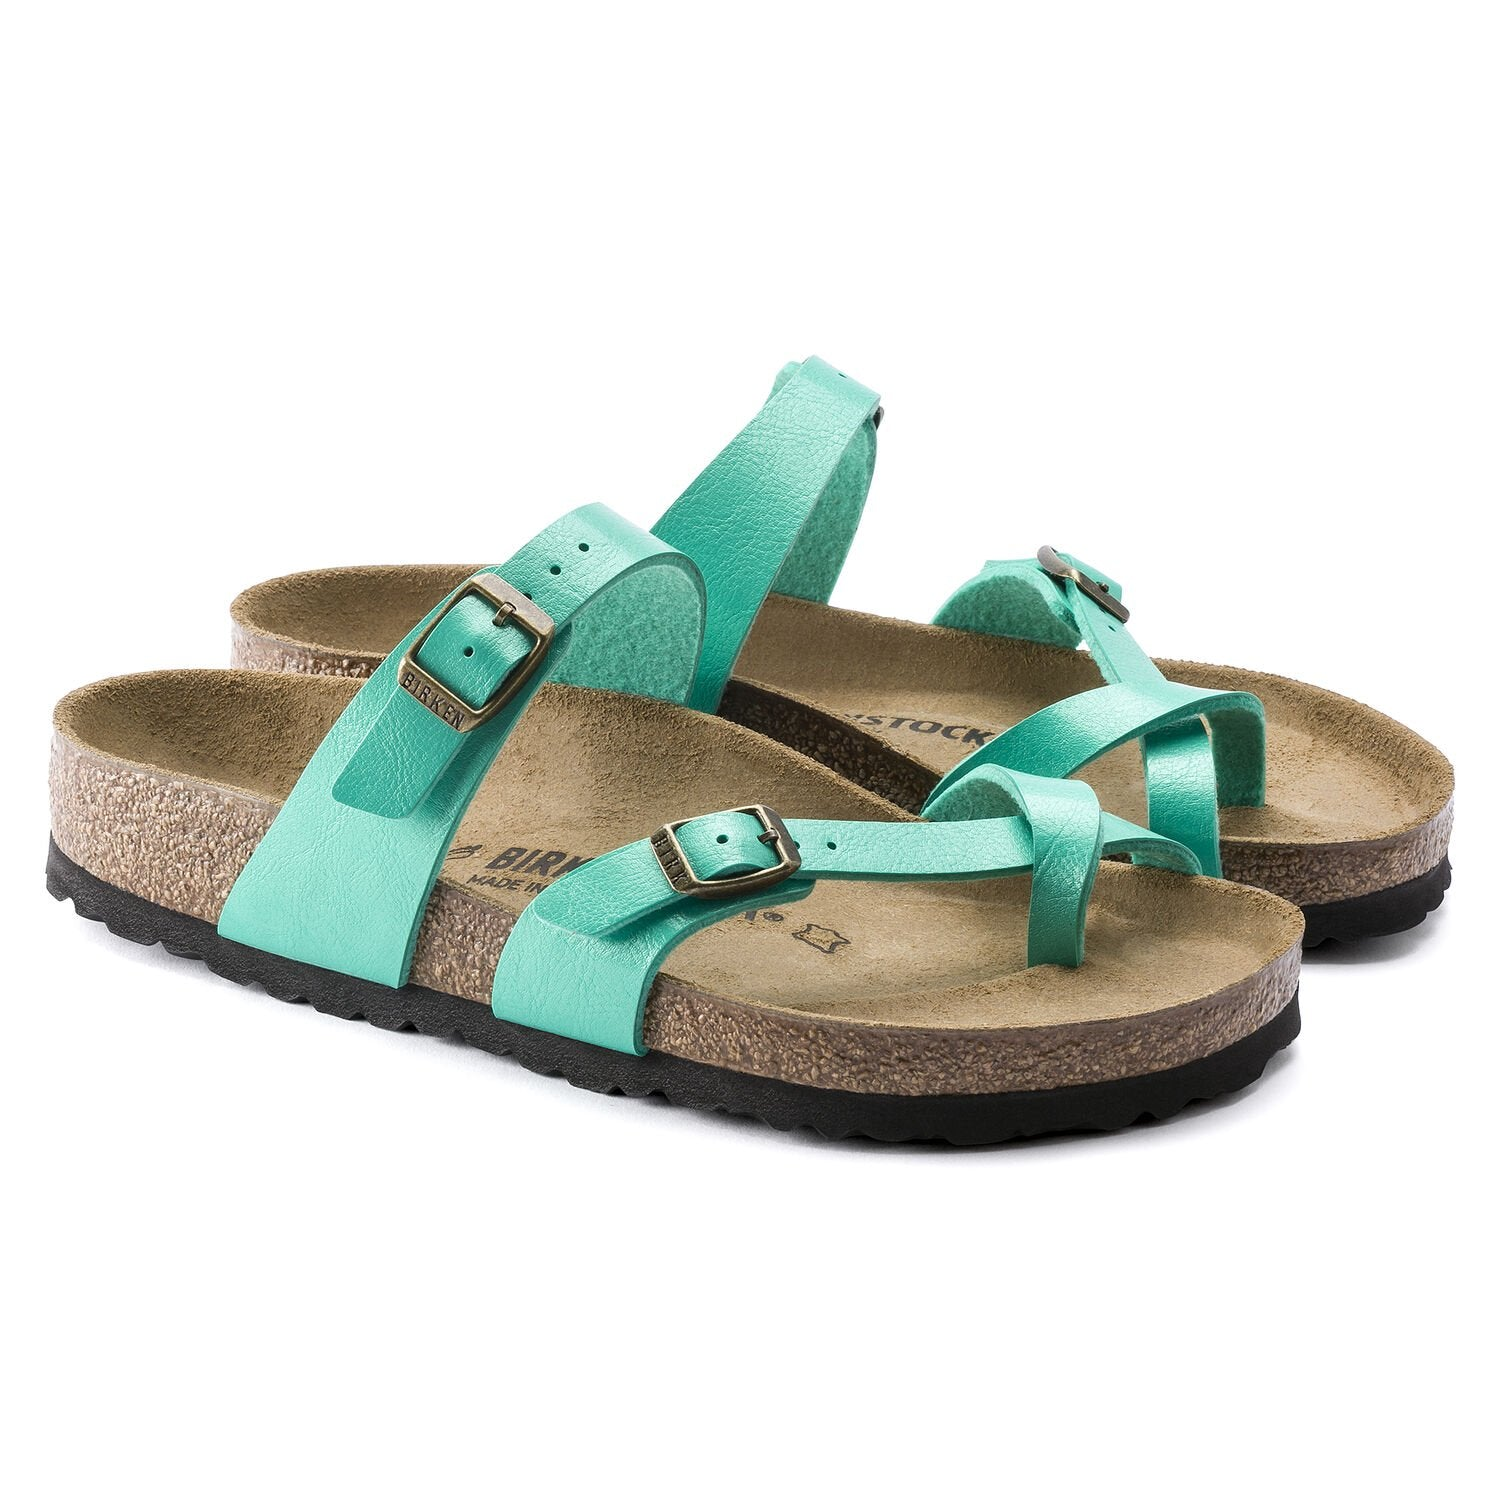 Birkenstock Mayari BF Graceful Sandal for Ladies in Emerald